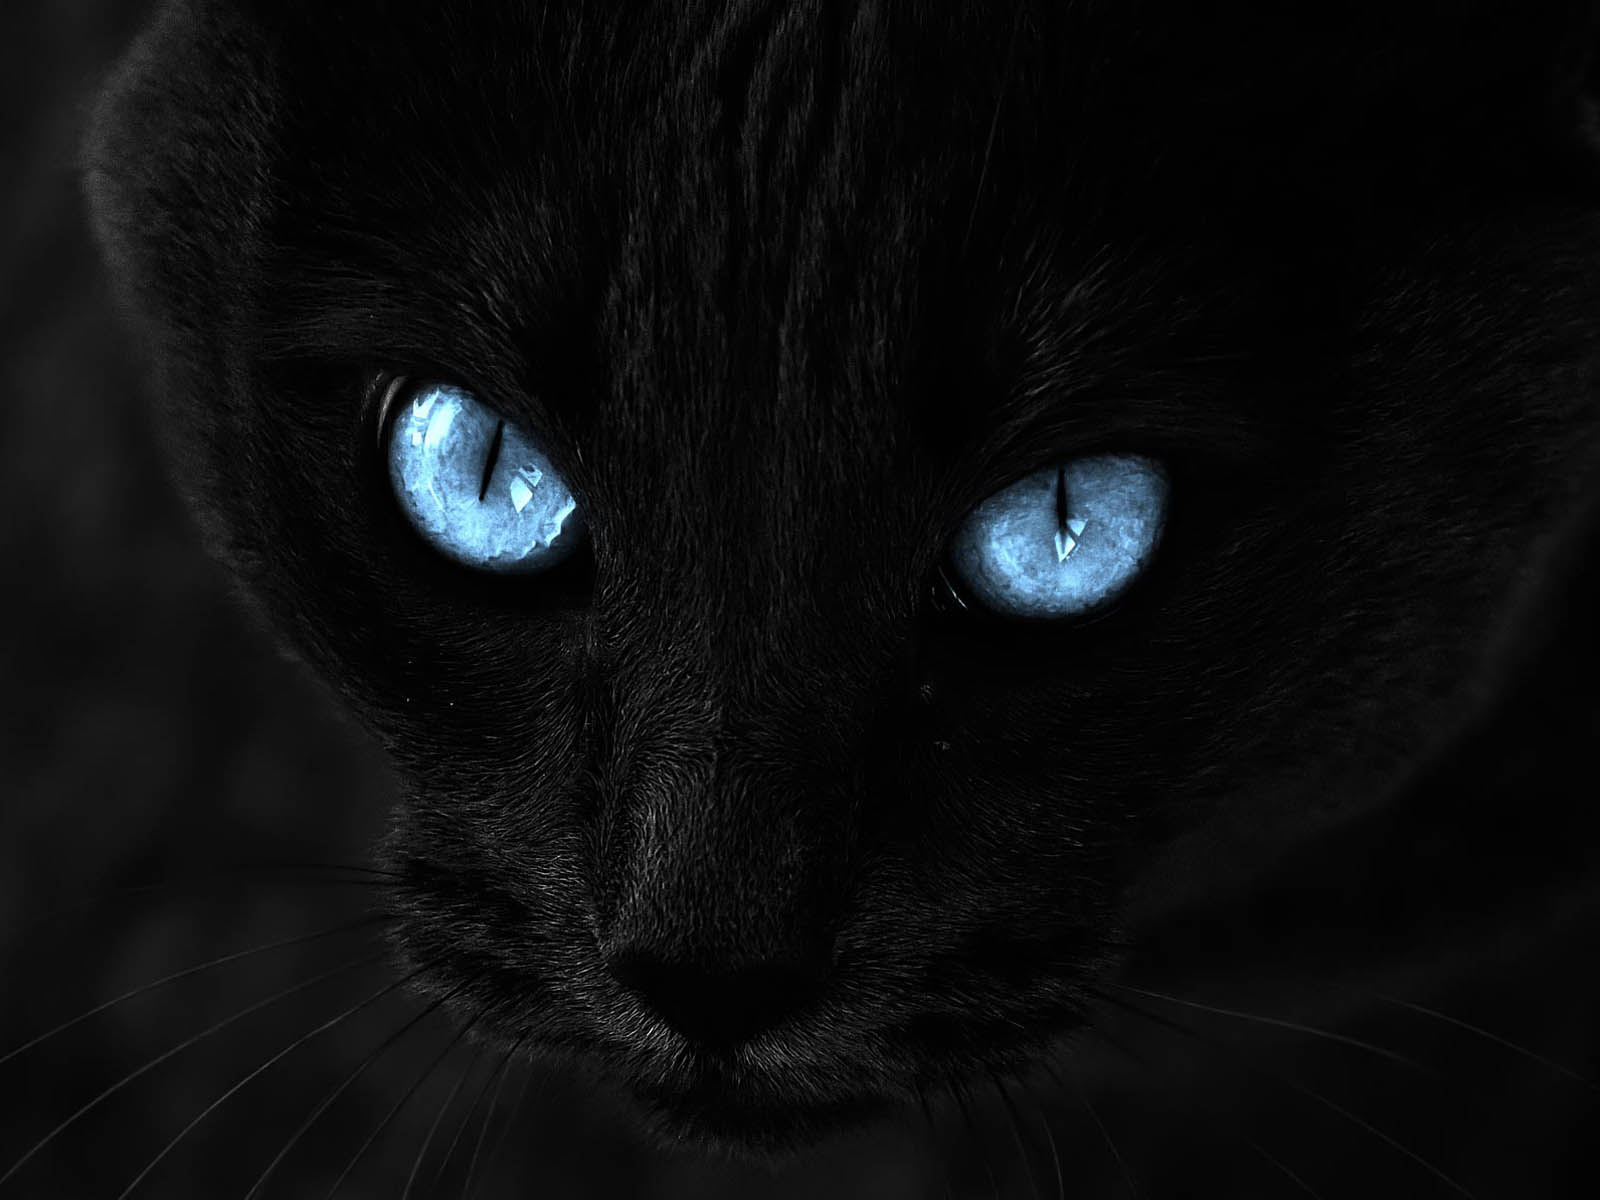 Image Black Cat With Blue Eyes Hd Wallpaper Desktop Jpg Animal